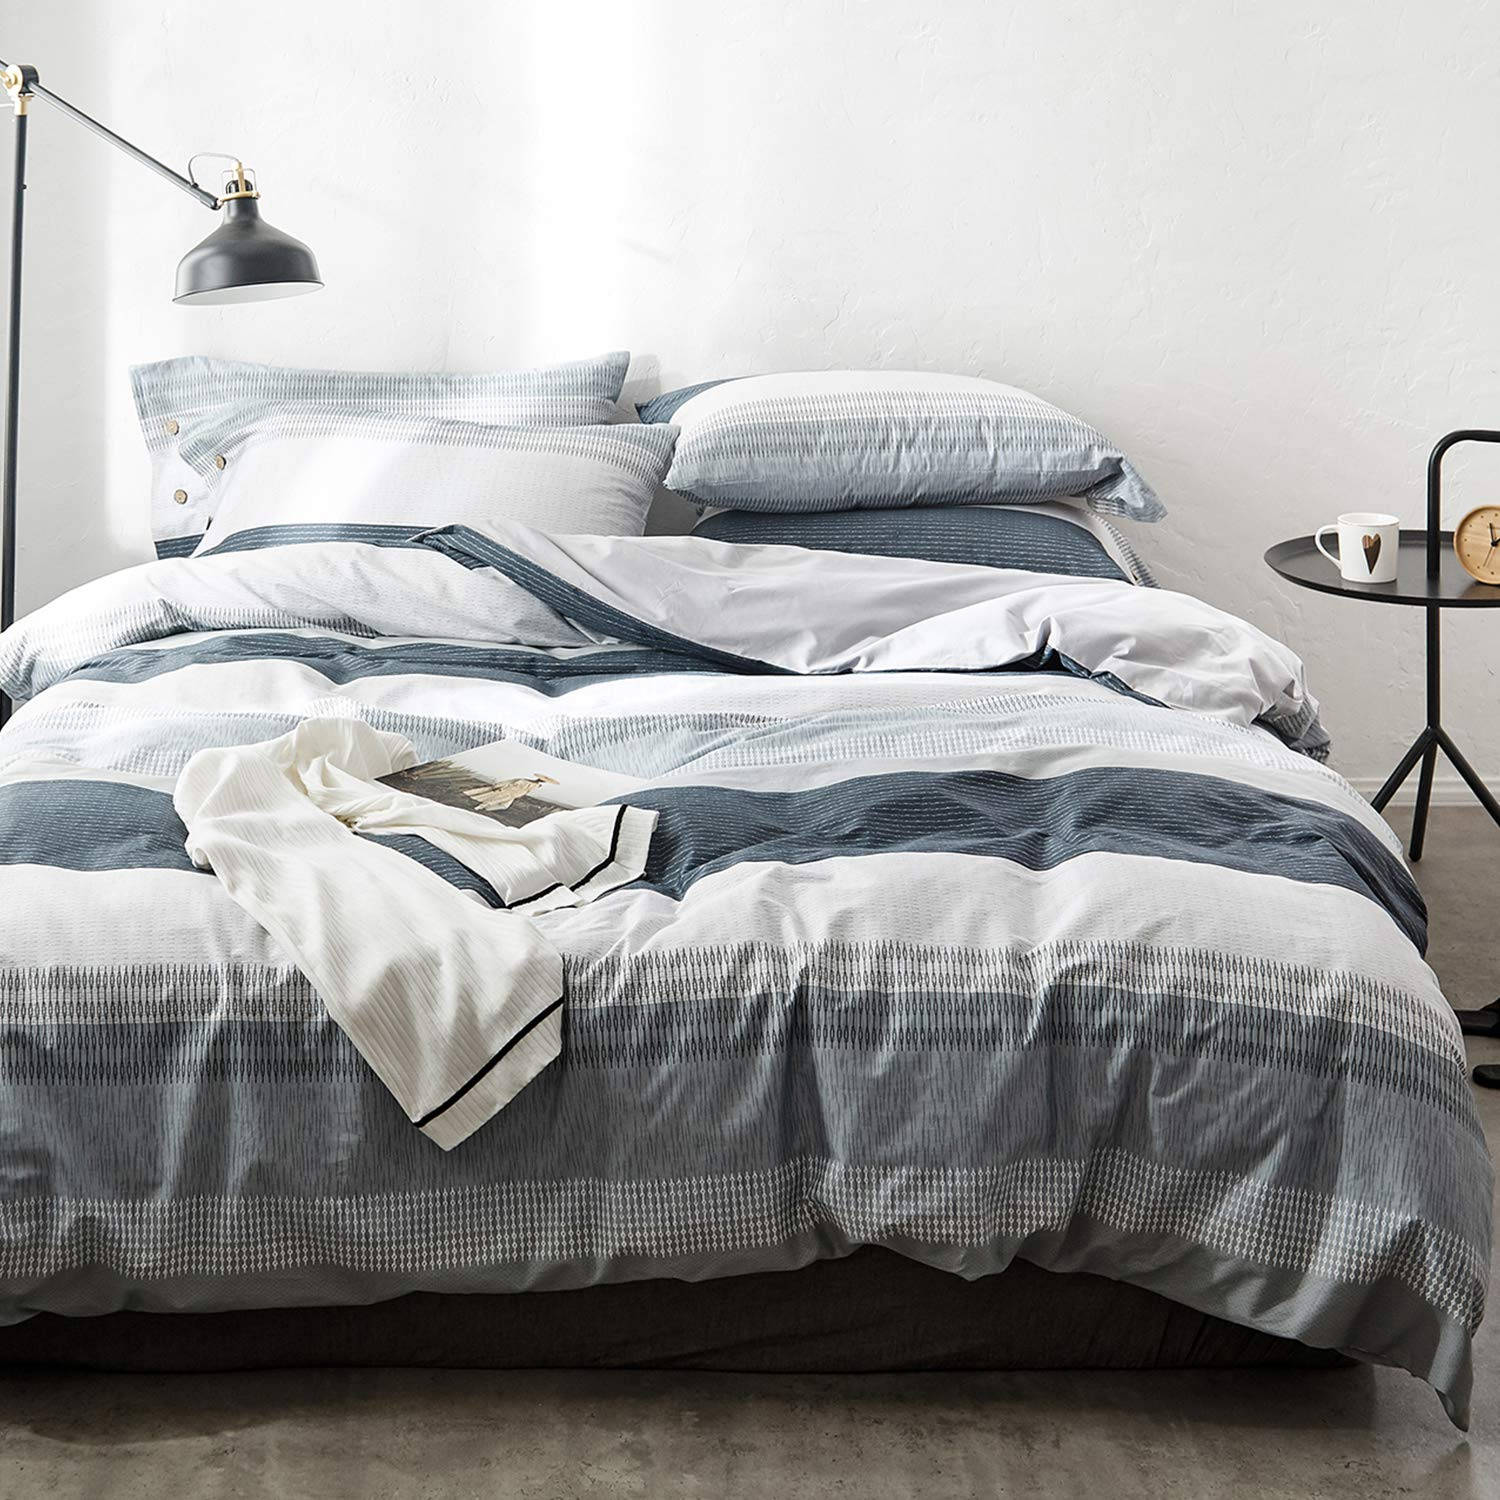 OREISE Duvet Cover Set King Size 100% Cotton Bedding Set Gray Blue White Printed Striped Style,3Piece (1 Duvet Cover + 2 Pillowcase),Comfortable Luxurious Hypoallergenic